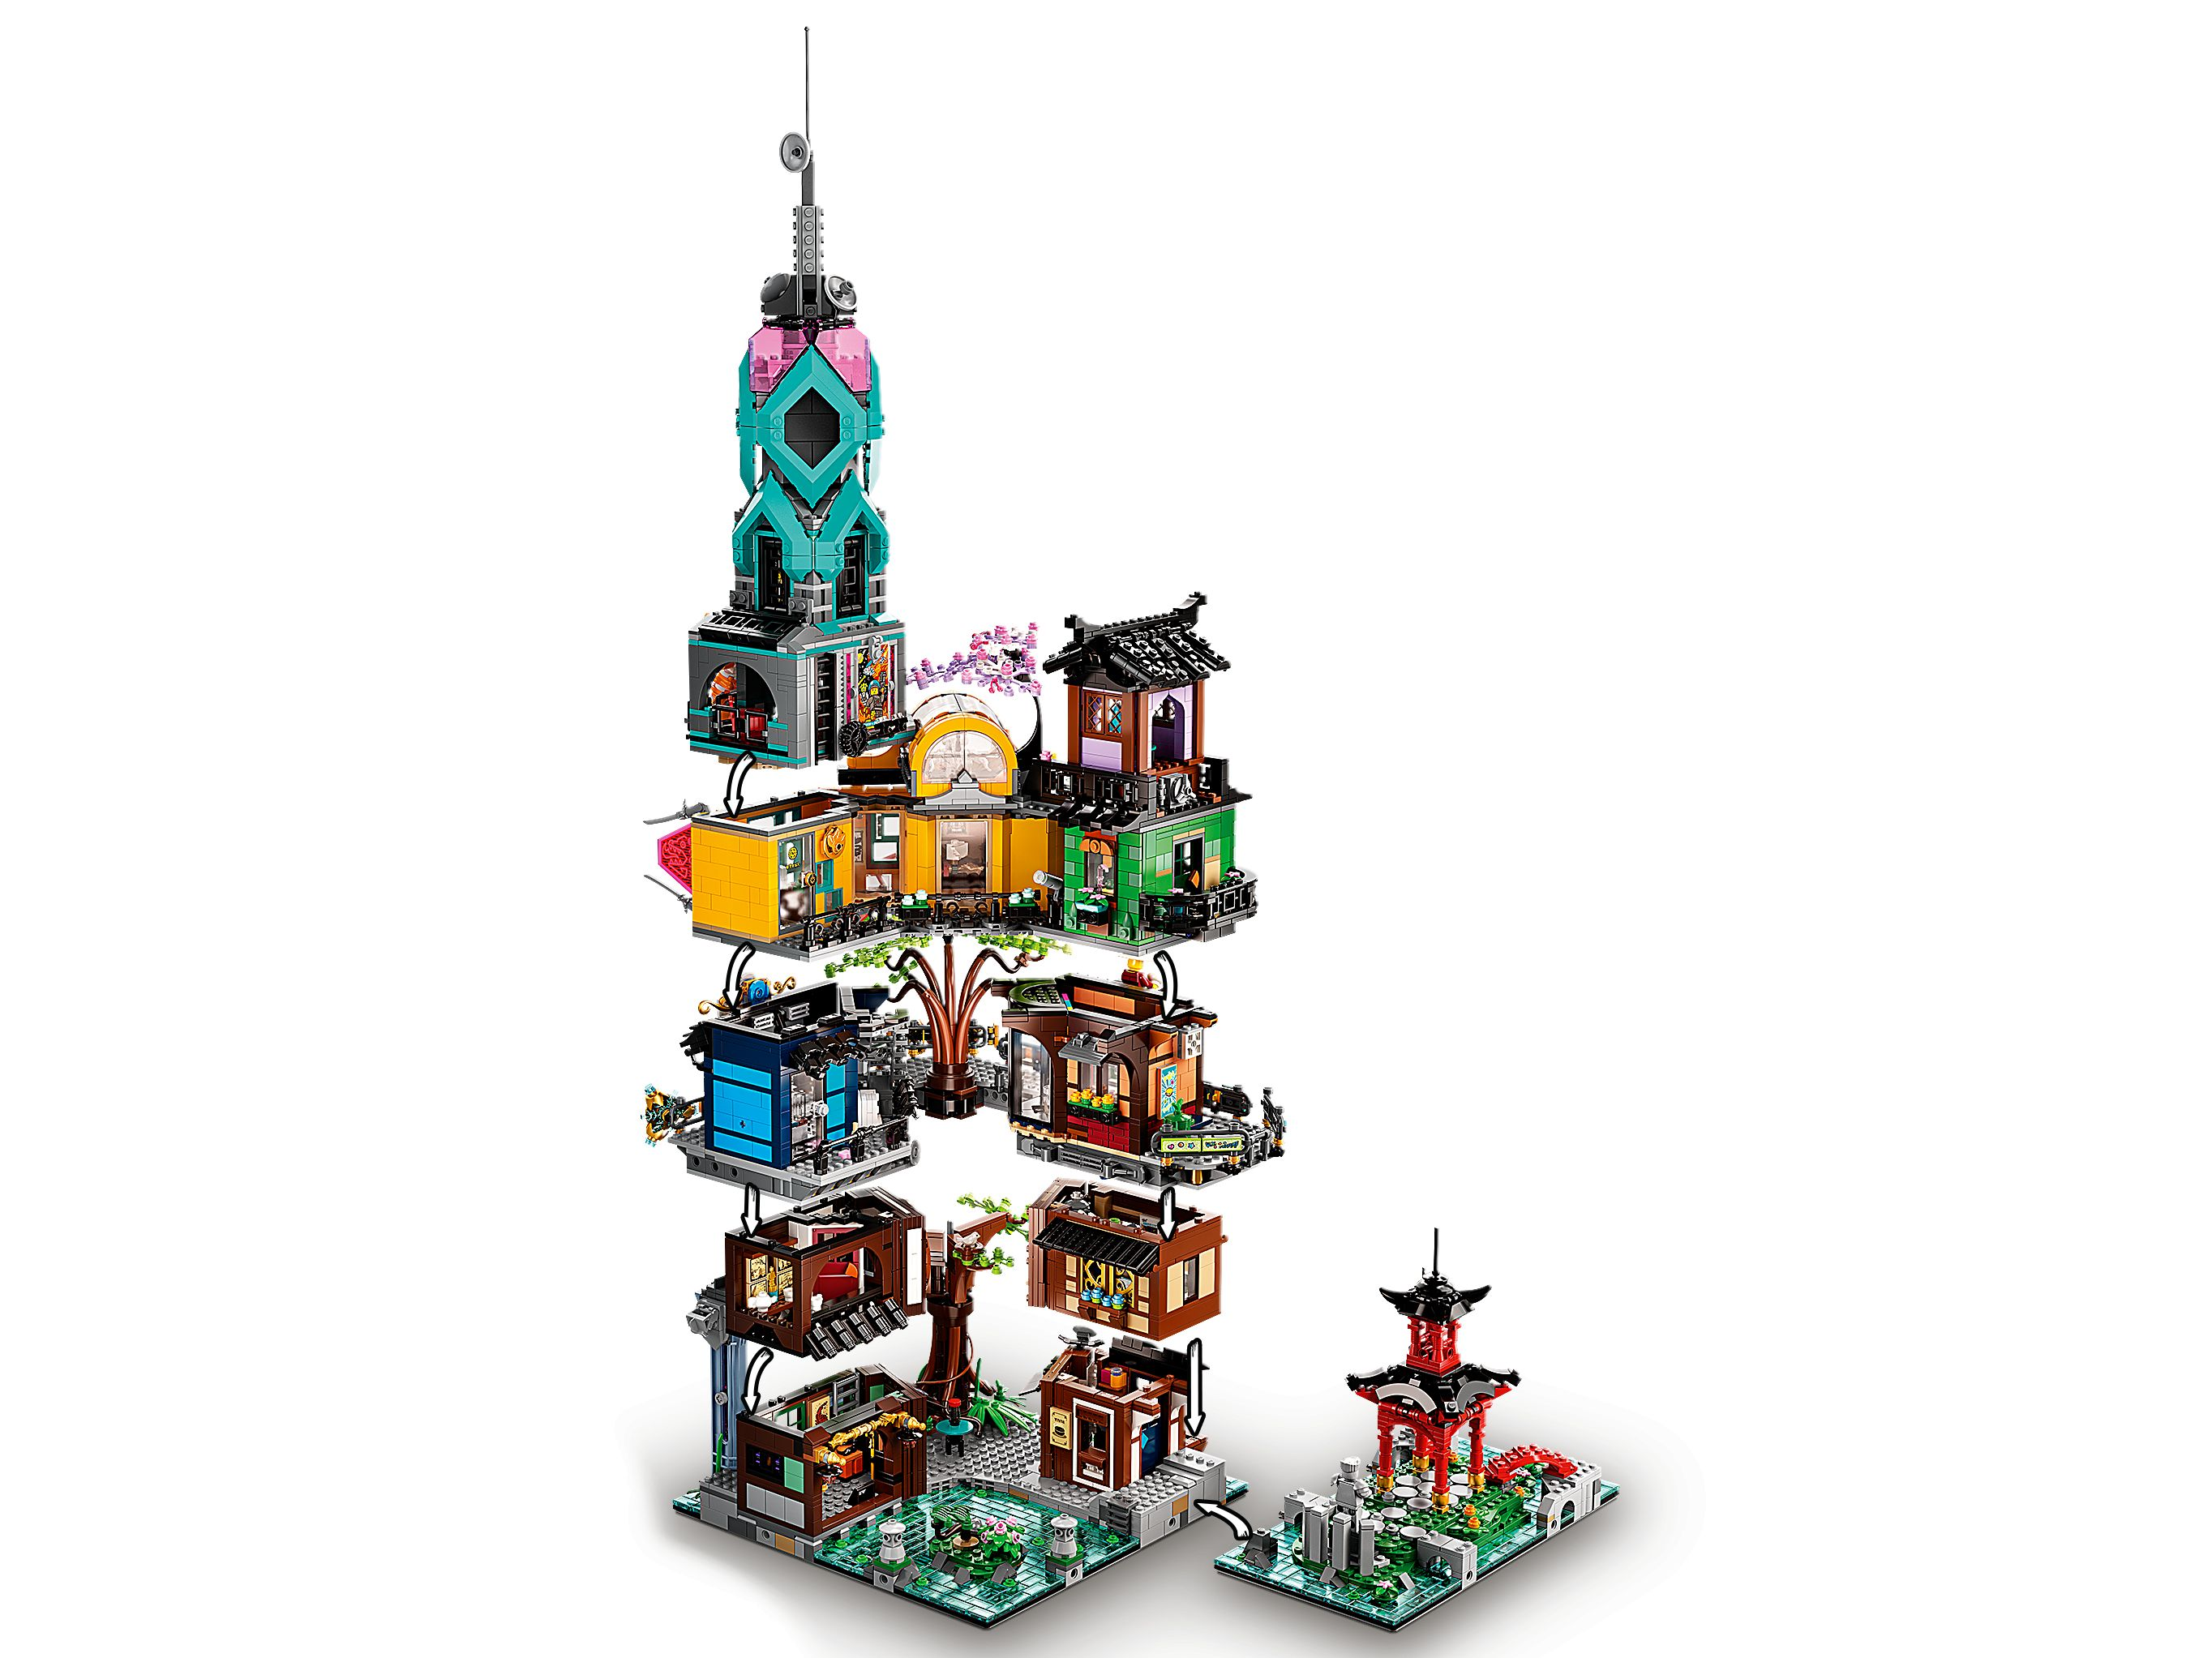 LEGO The LEGO Ninjago Movie 71741 Die Gärten von Ninjago City LEGO_71741_alt6.jpg